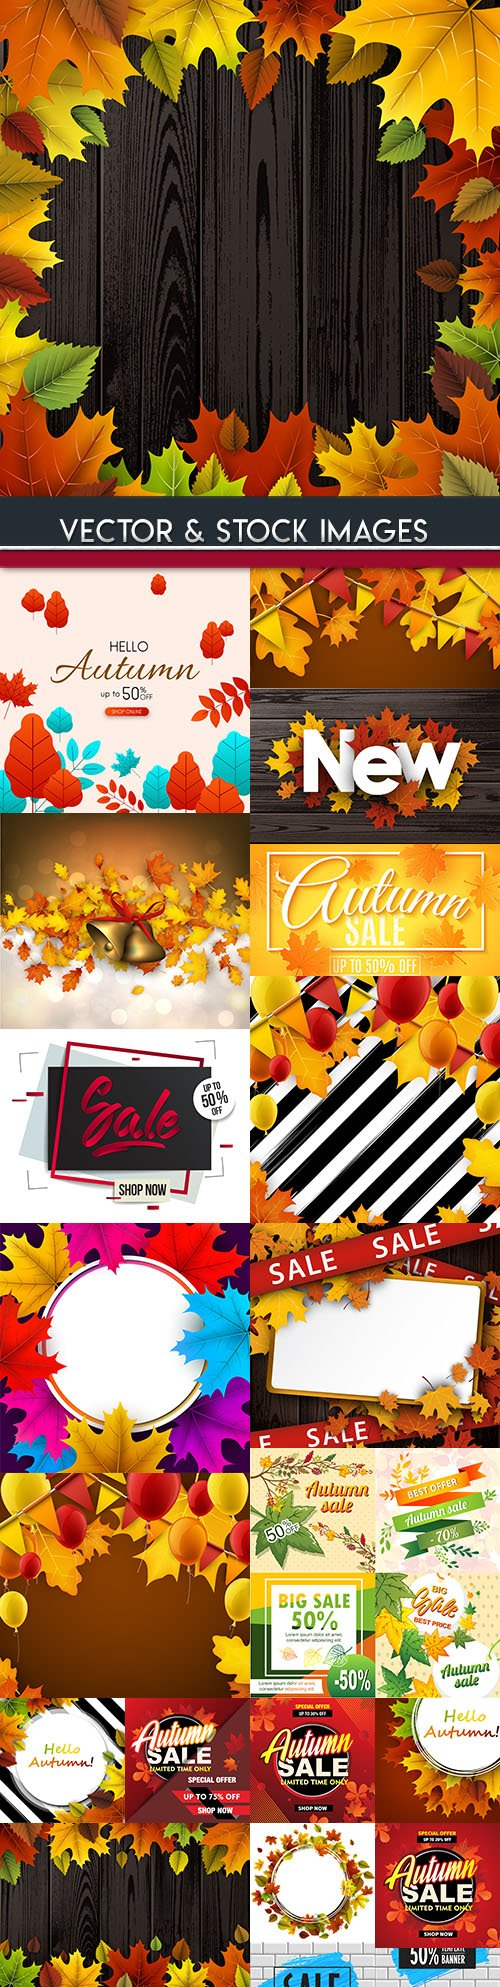 Autumn special sale and leaves wooden design background